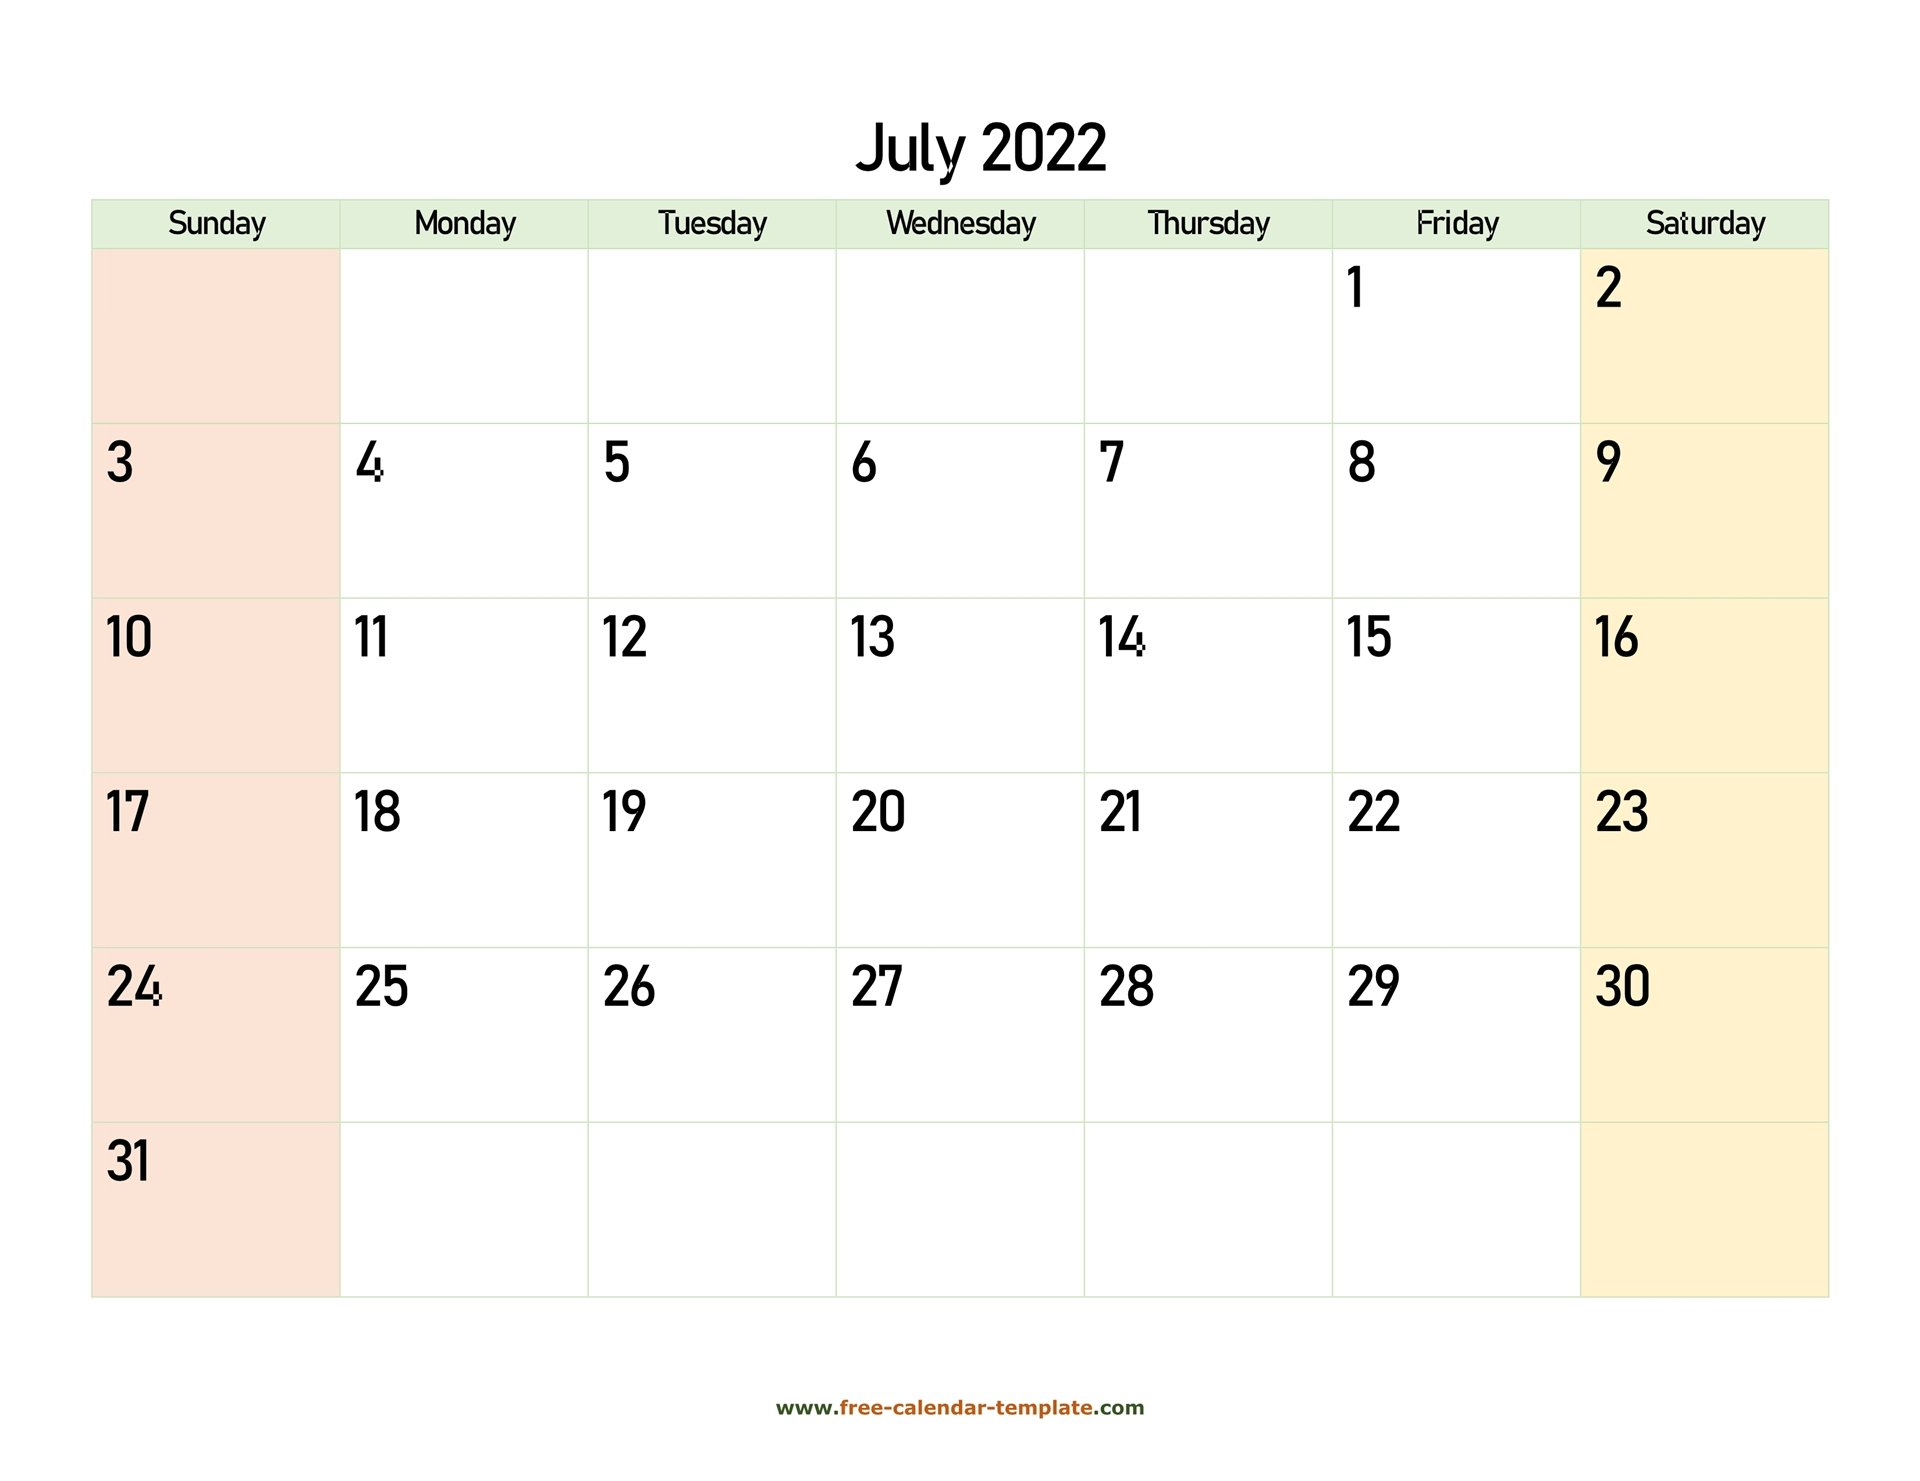 July 2022 Calendar Printable With Coloring On Weekend regarding Printable 2022 July Calendar Image